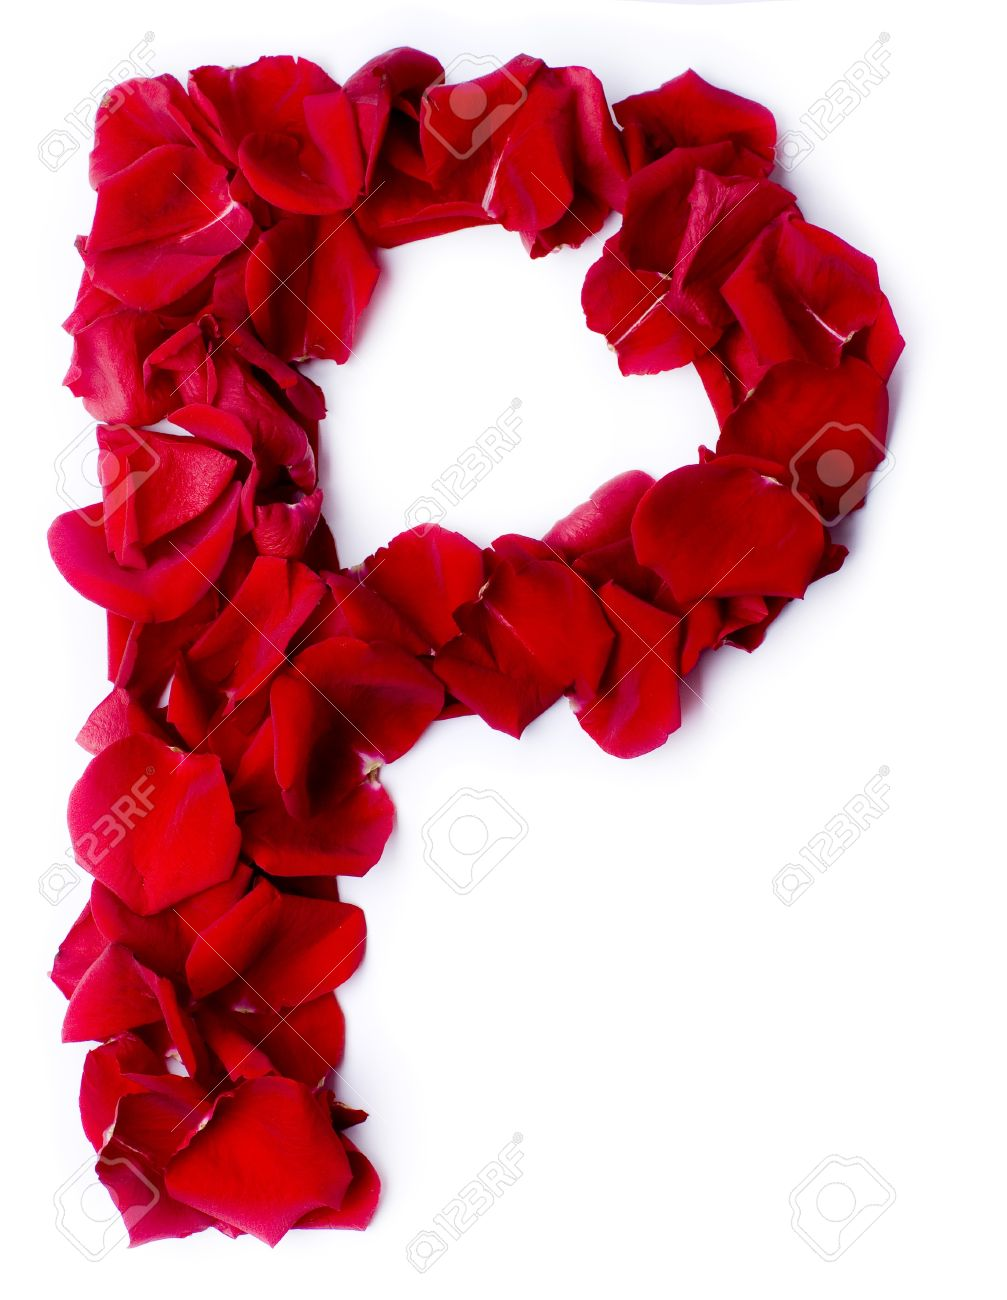 Alphabet P Made From Red Petals Rose Stock Photo